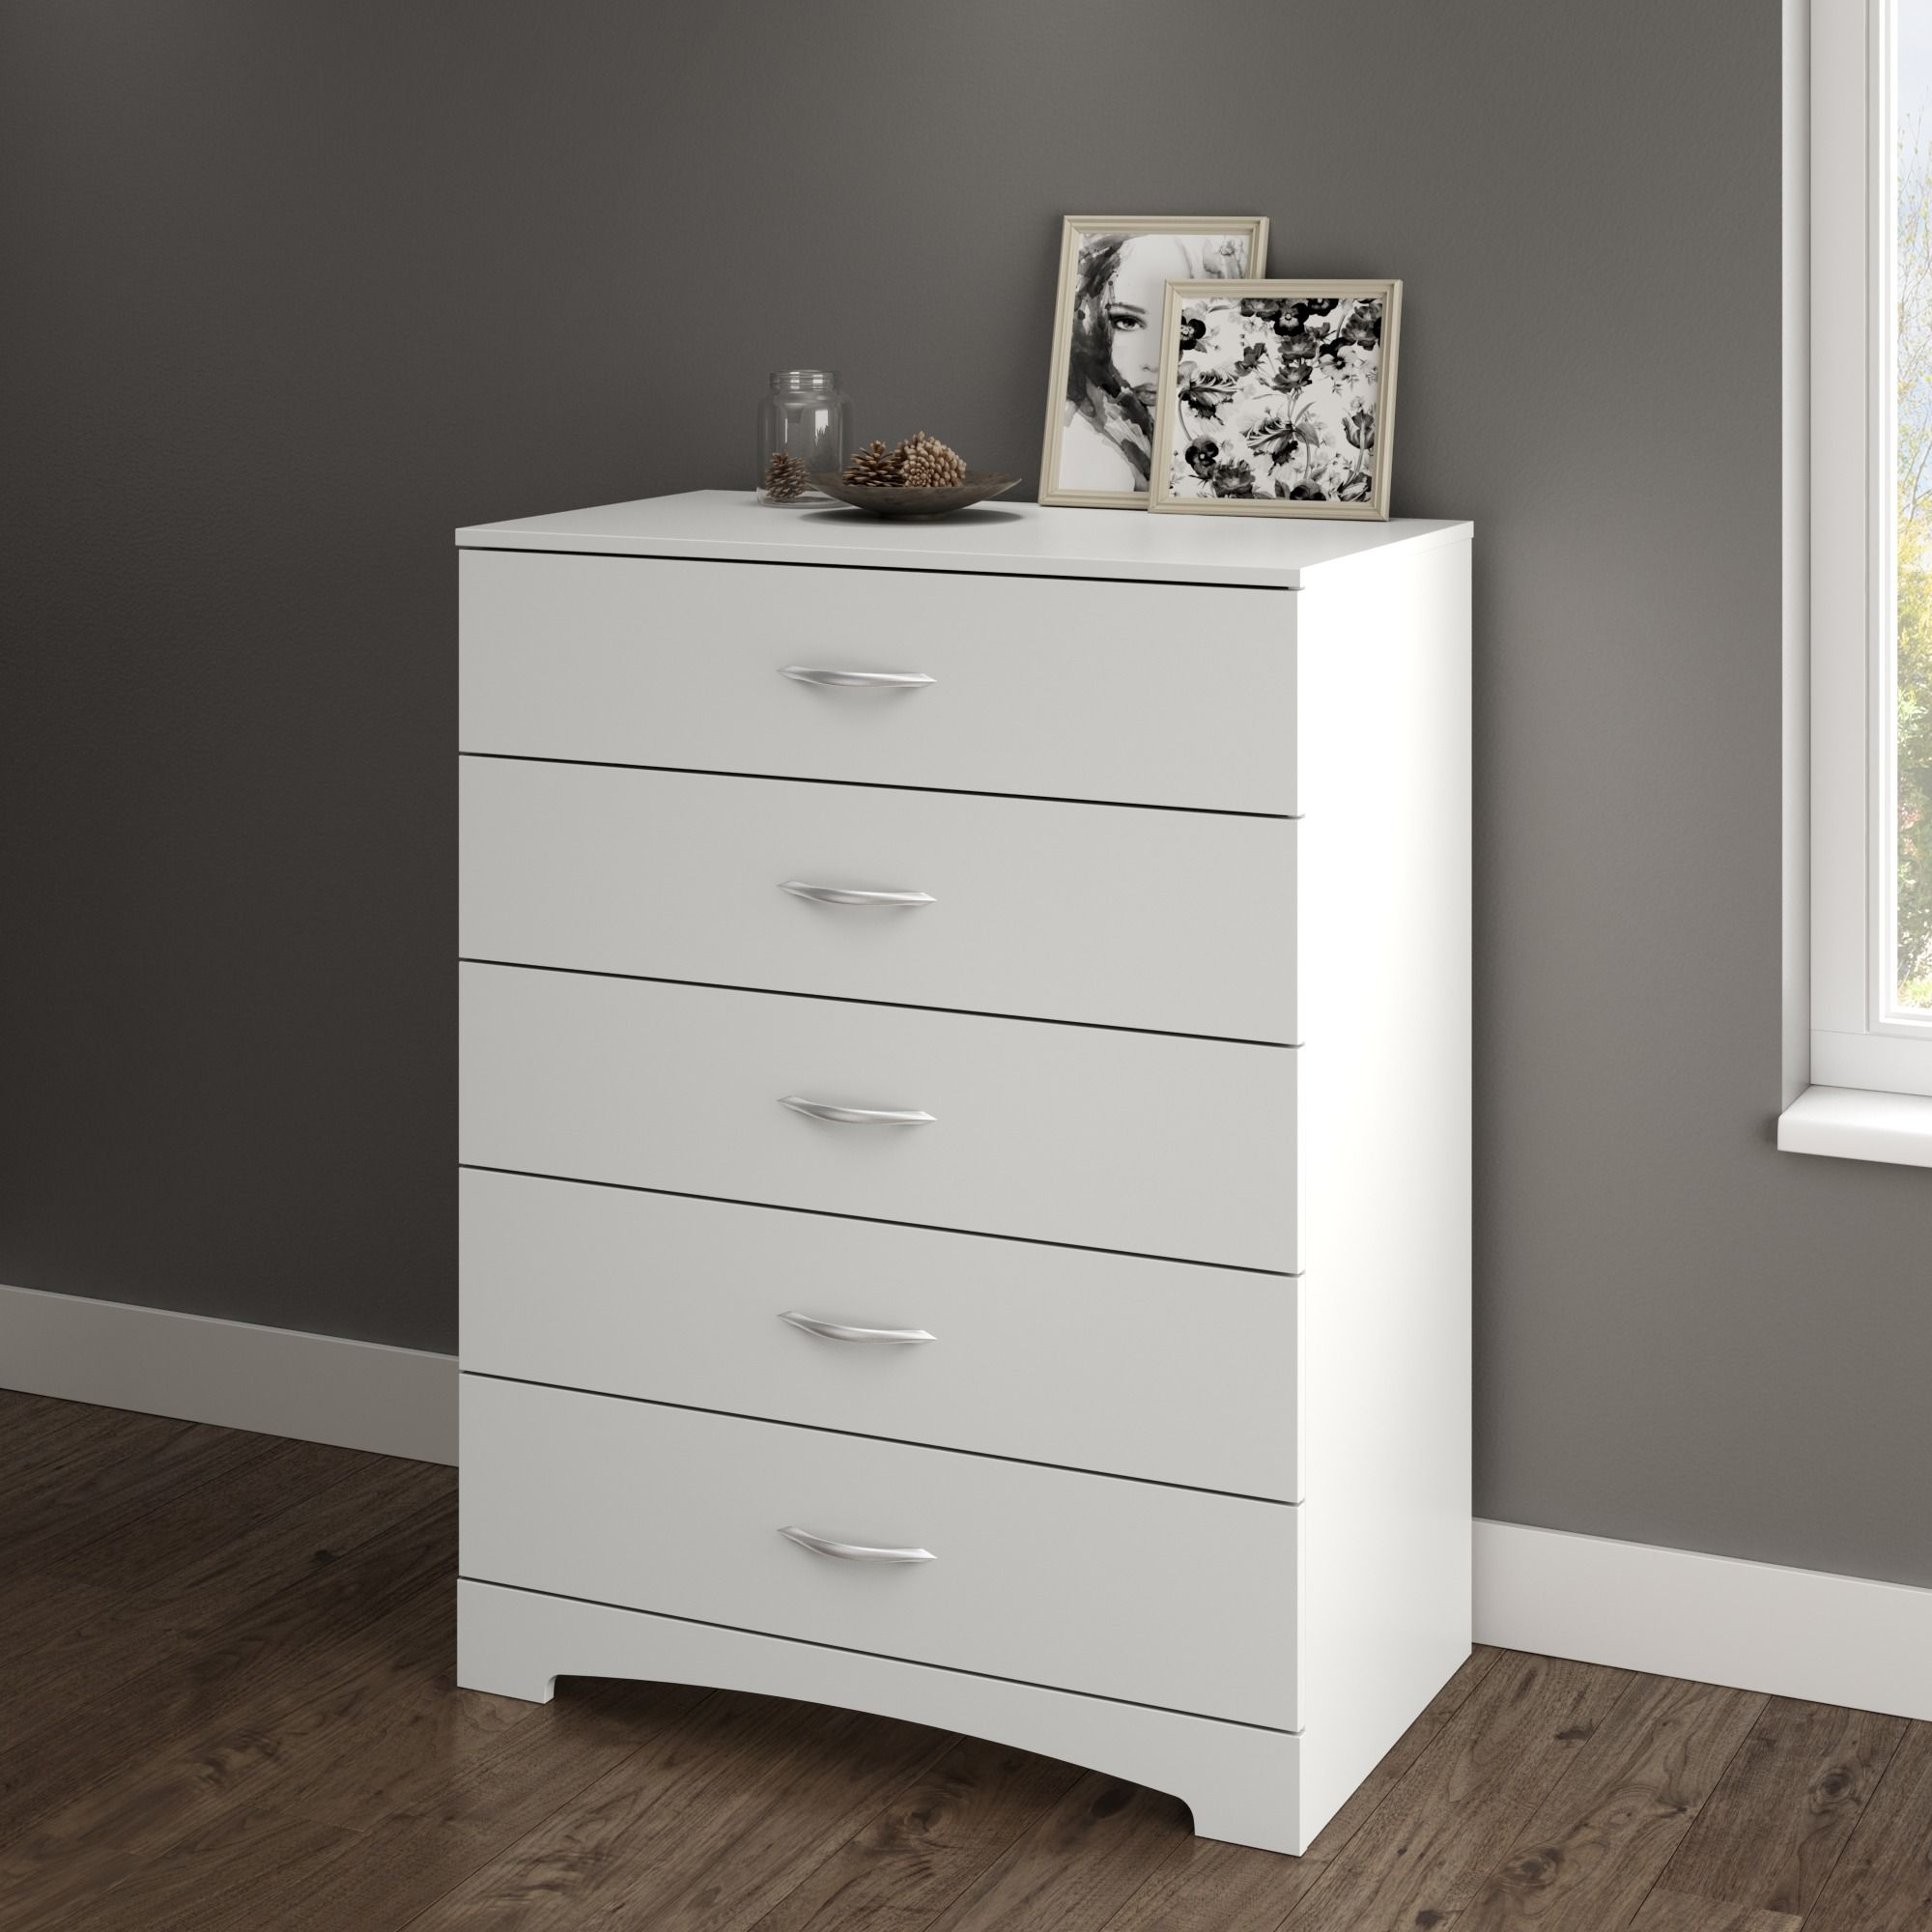 South Shore Soho 5 Drawer Chest White Walmart Com In 2021 Furniture 5 Drawer Chest Dresser Drawers [ 2000 x 2000 Pixel ]